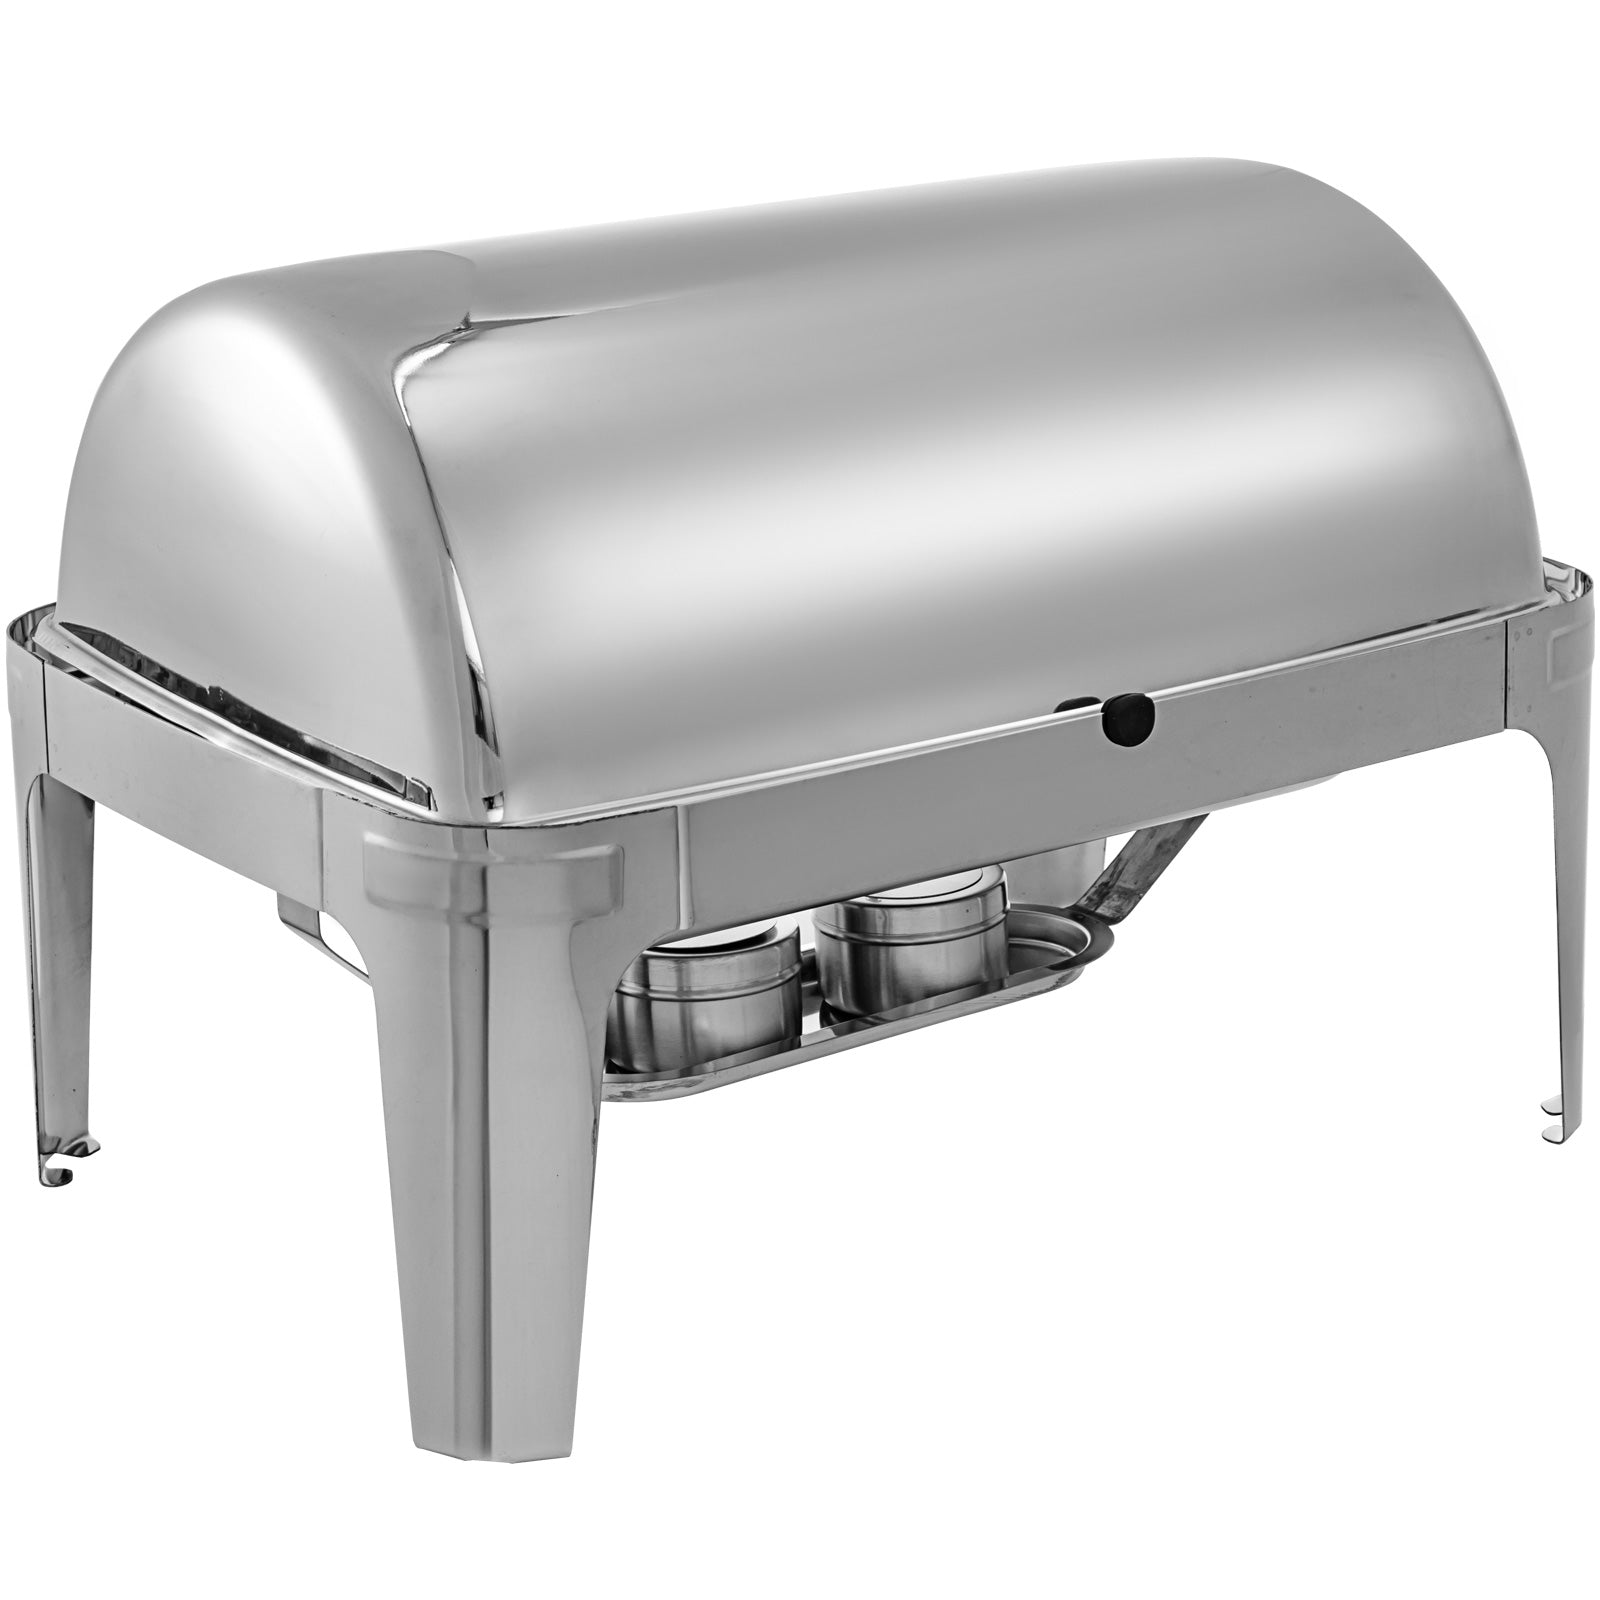 Chafing Dish Roll Top Chafer 9 L Buffet Catering Restaurant Silver With Apron